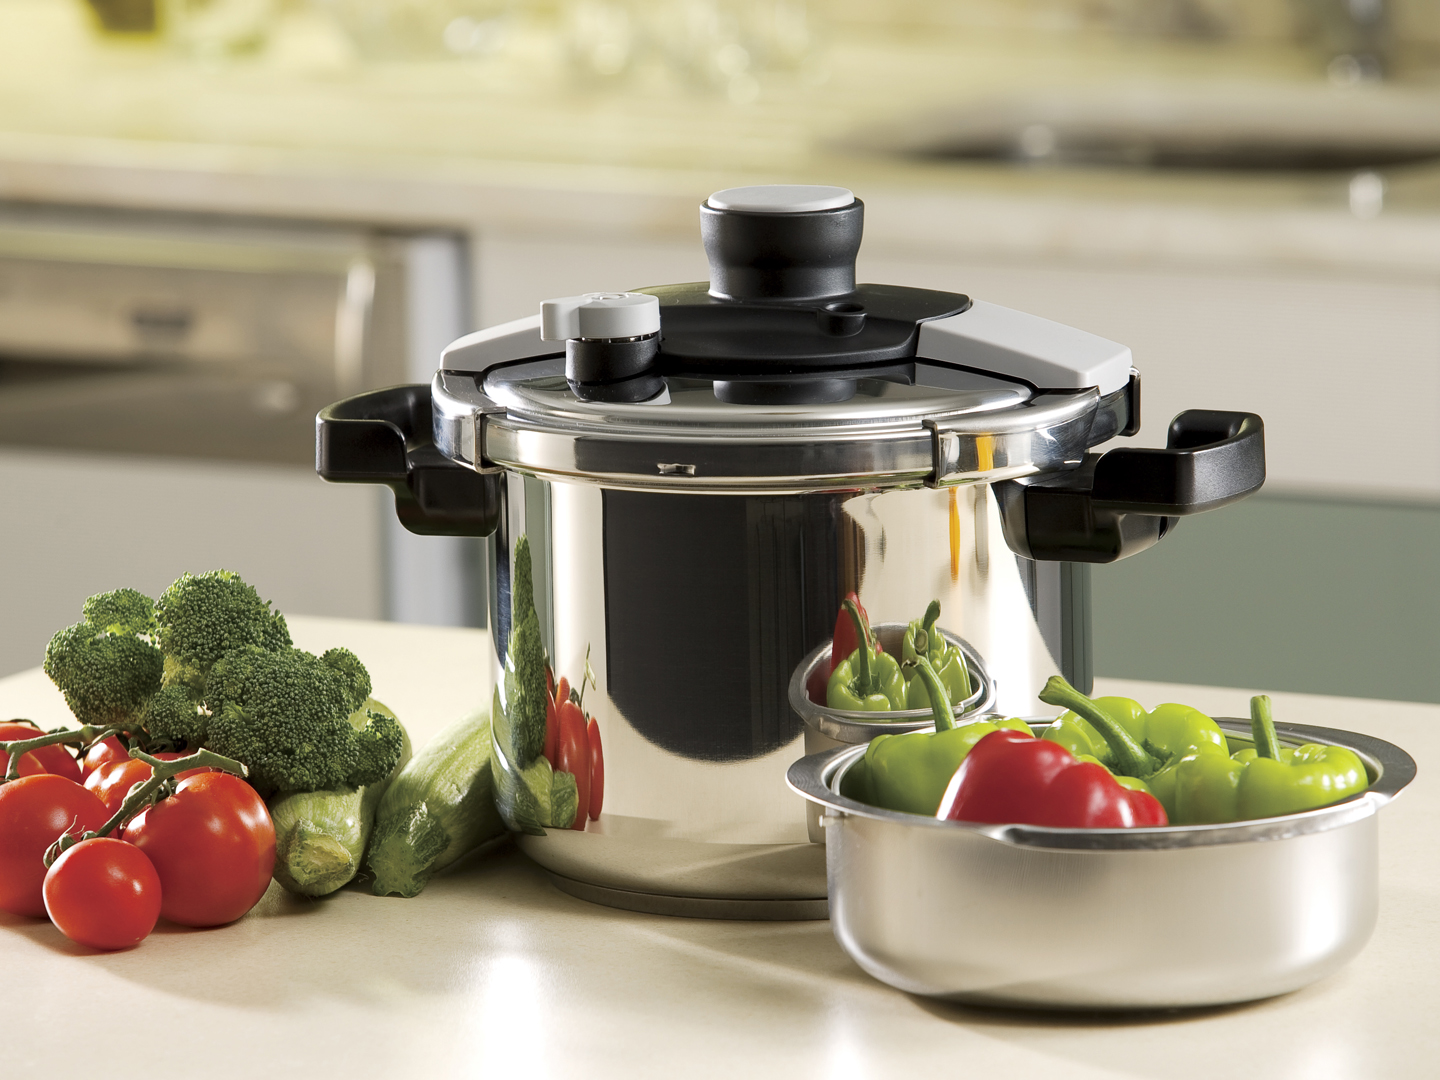 pressure cooker on kitchen counter